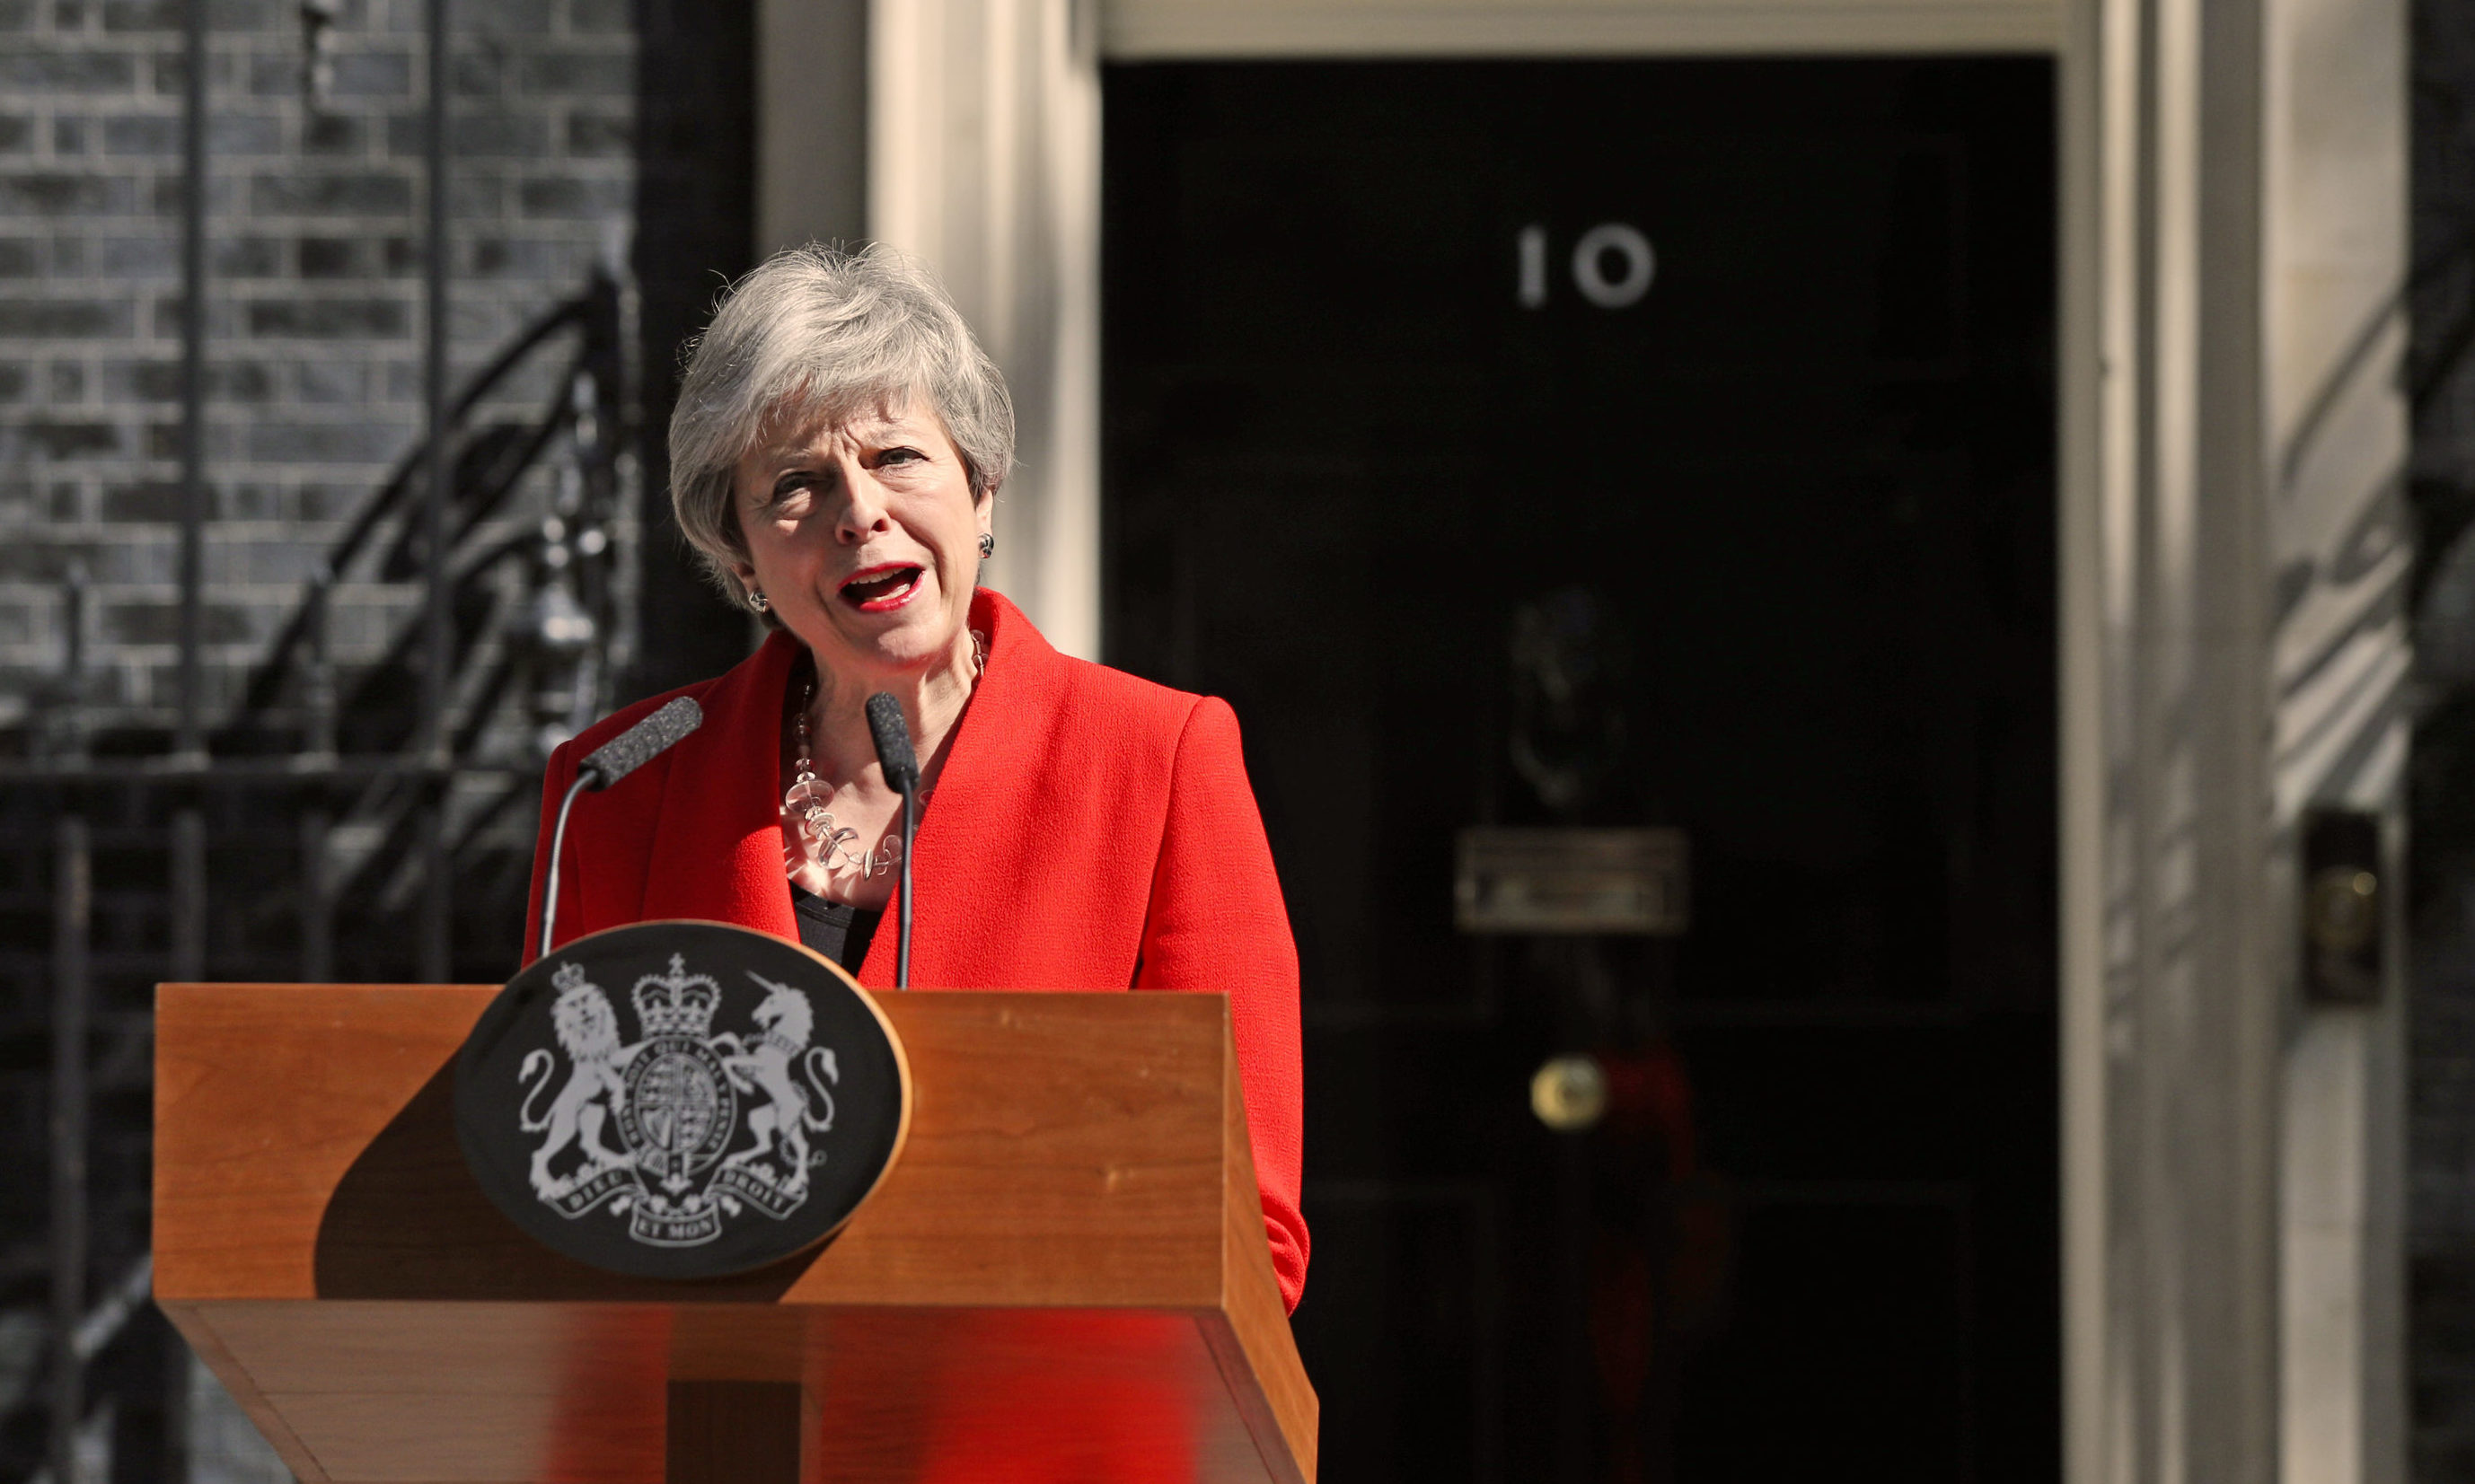 Prime Minister Theresa May makes a statement outside at 10 Downing Street.